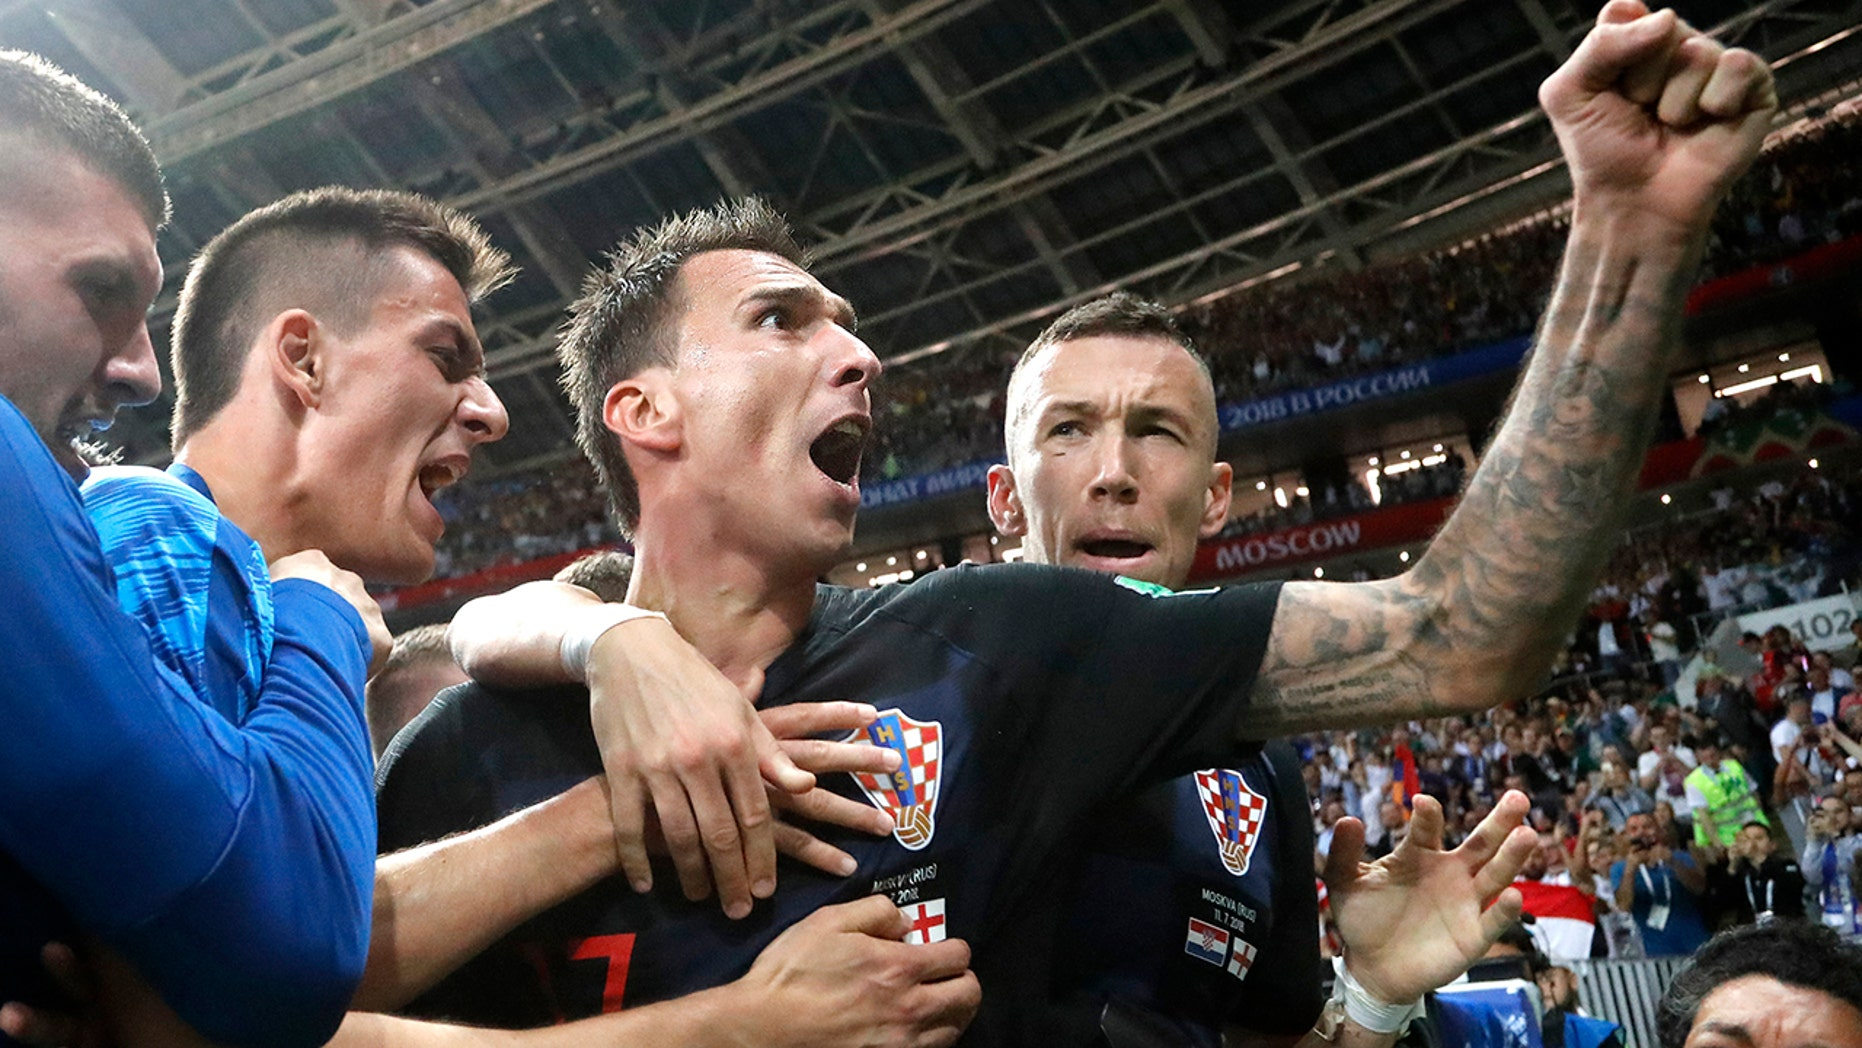 Croatia's Mario Mandzukic, center, celebrates after scoring his side's second goal during the semifinal match between Croatia and England at the 2018 FIFA World Cup, in Moscow, July 11, 2018.